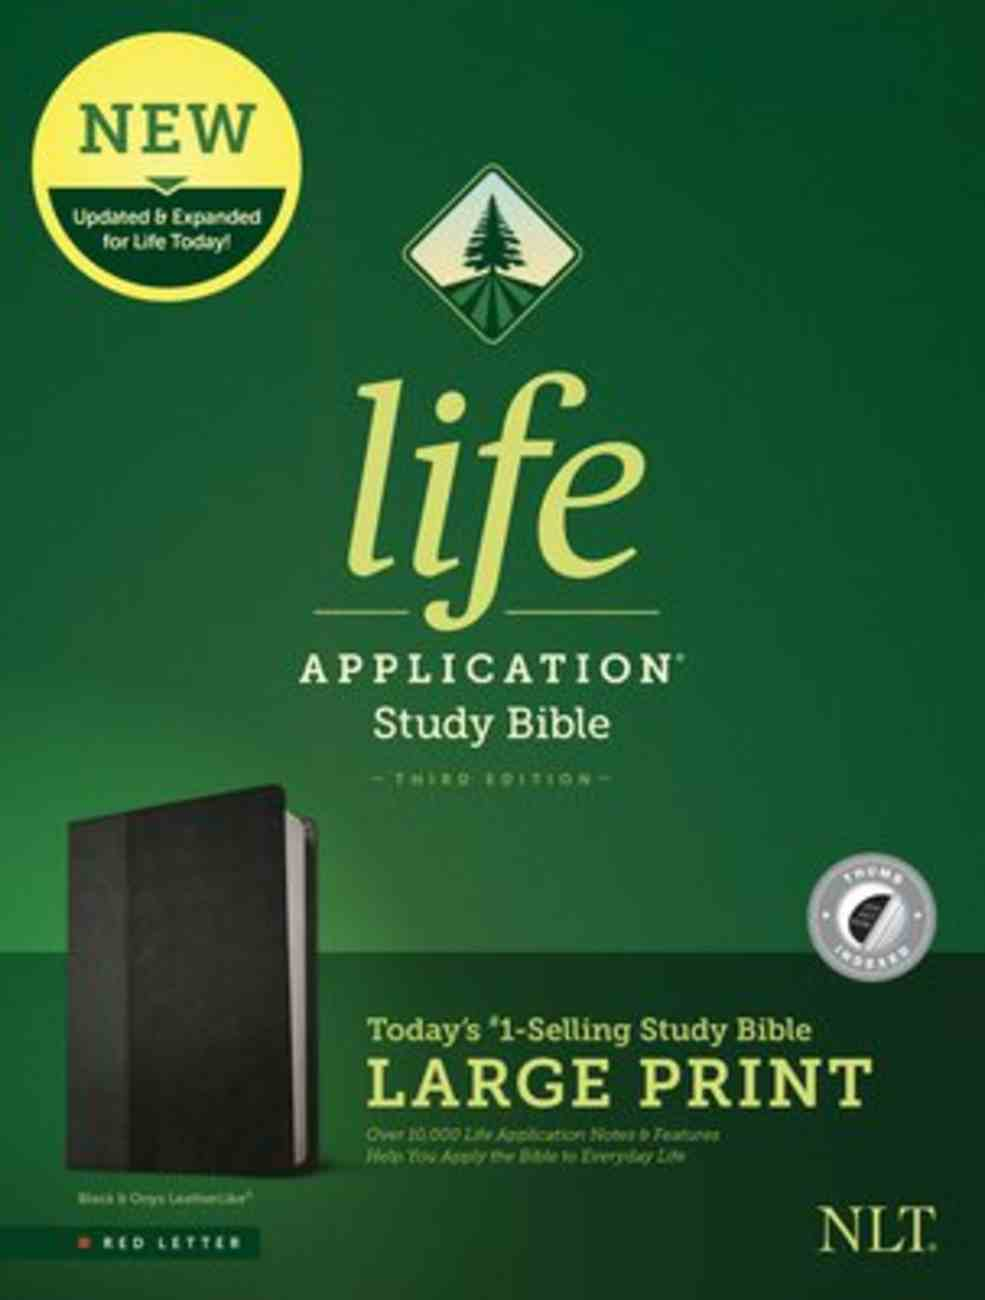 NLT Life Application Study Bible 3rd Edition Large Print Black/Onyx Indexed (Red Letter Edition) Imitation Leather